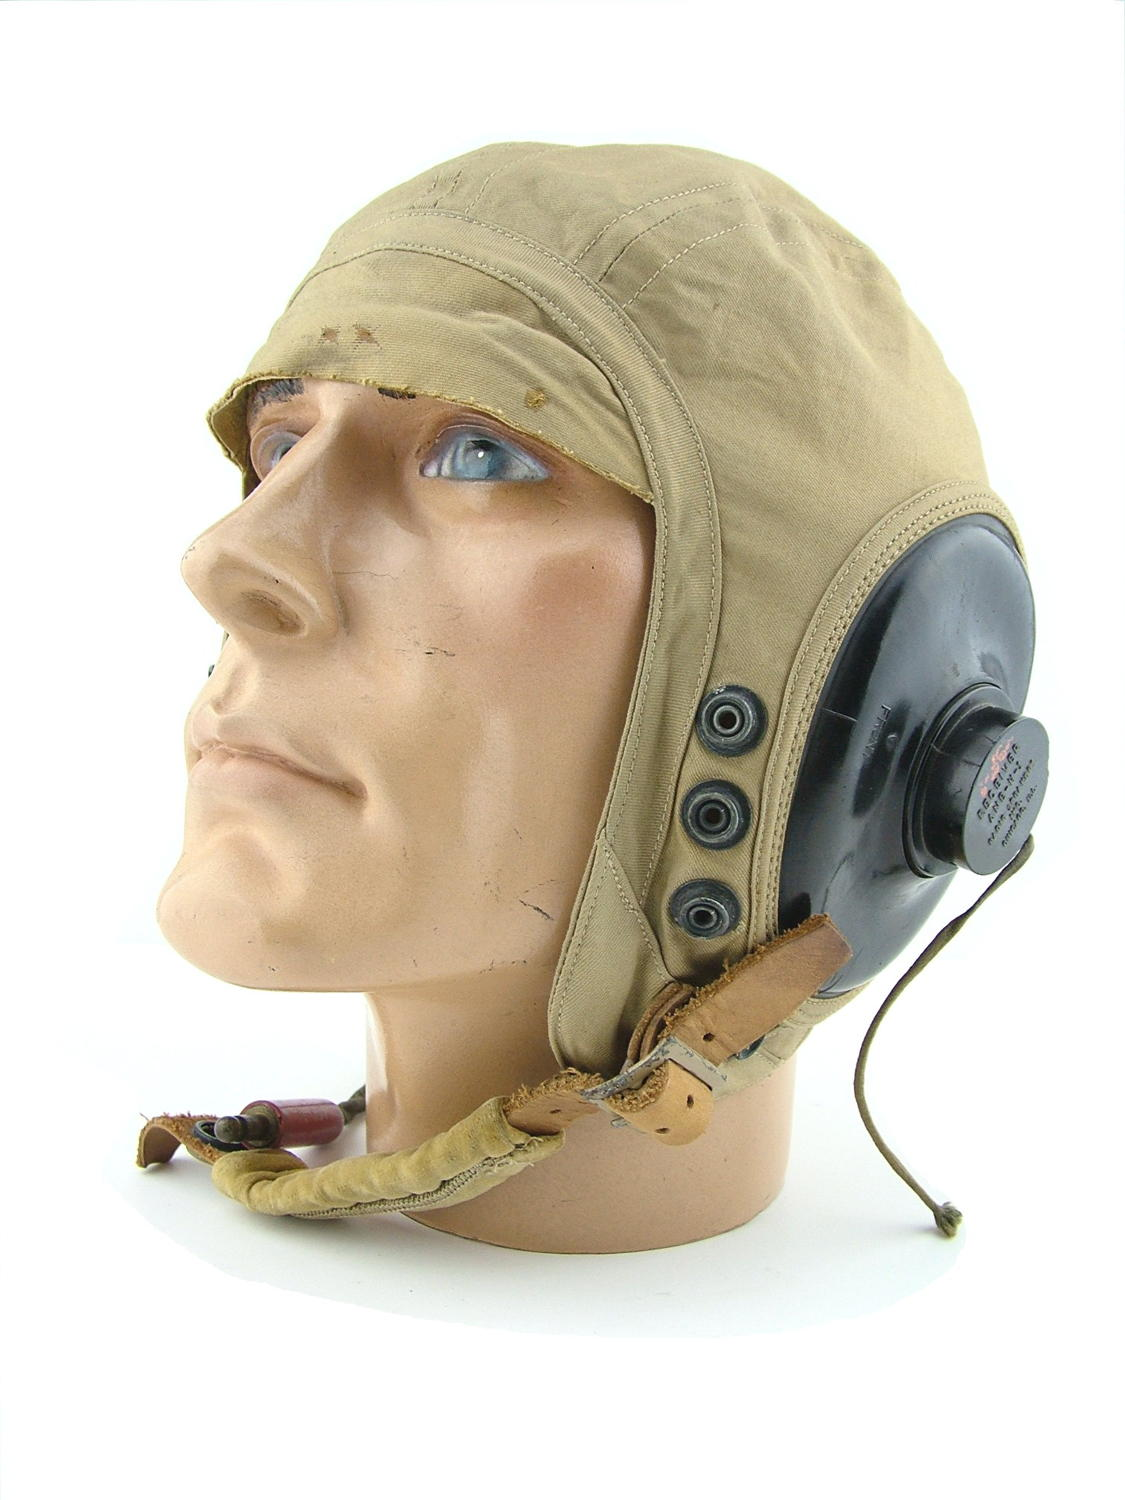 USAAF AN-H-15 flying helmet, wired